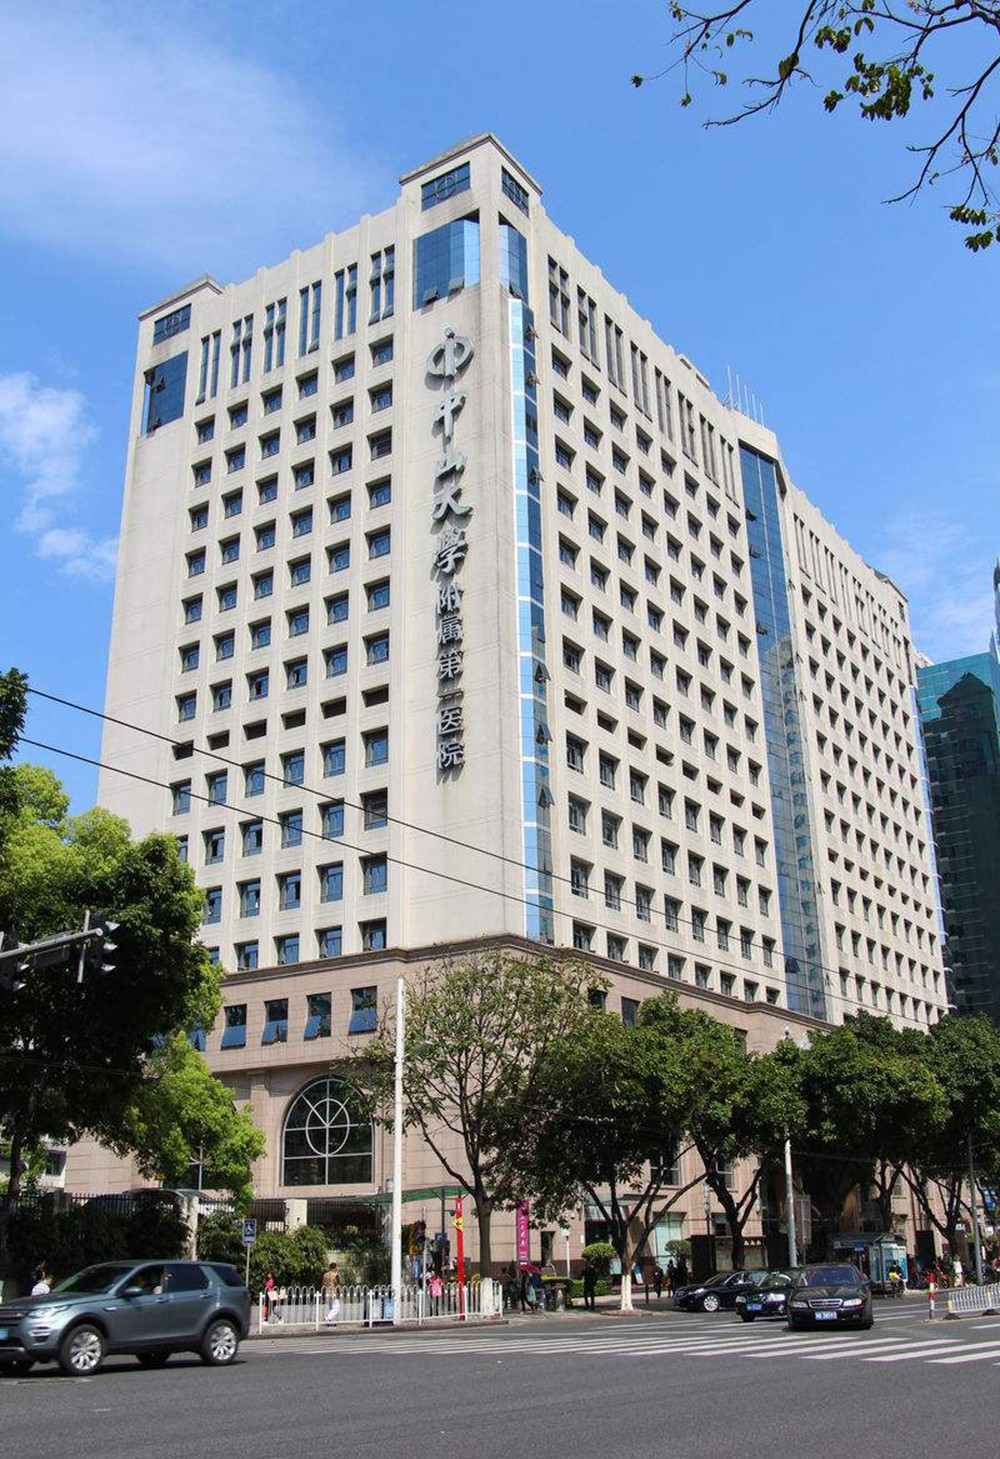 SW-3501 Premature Ejaculation Therapy System Installed in the Zhongshan Hospital